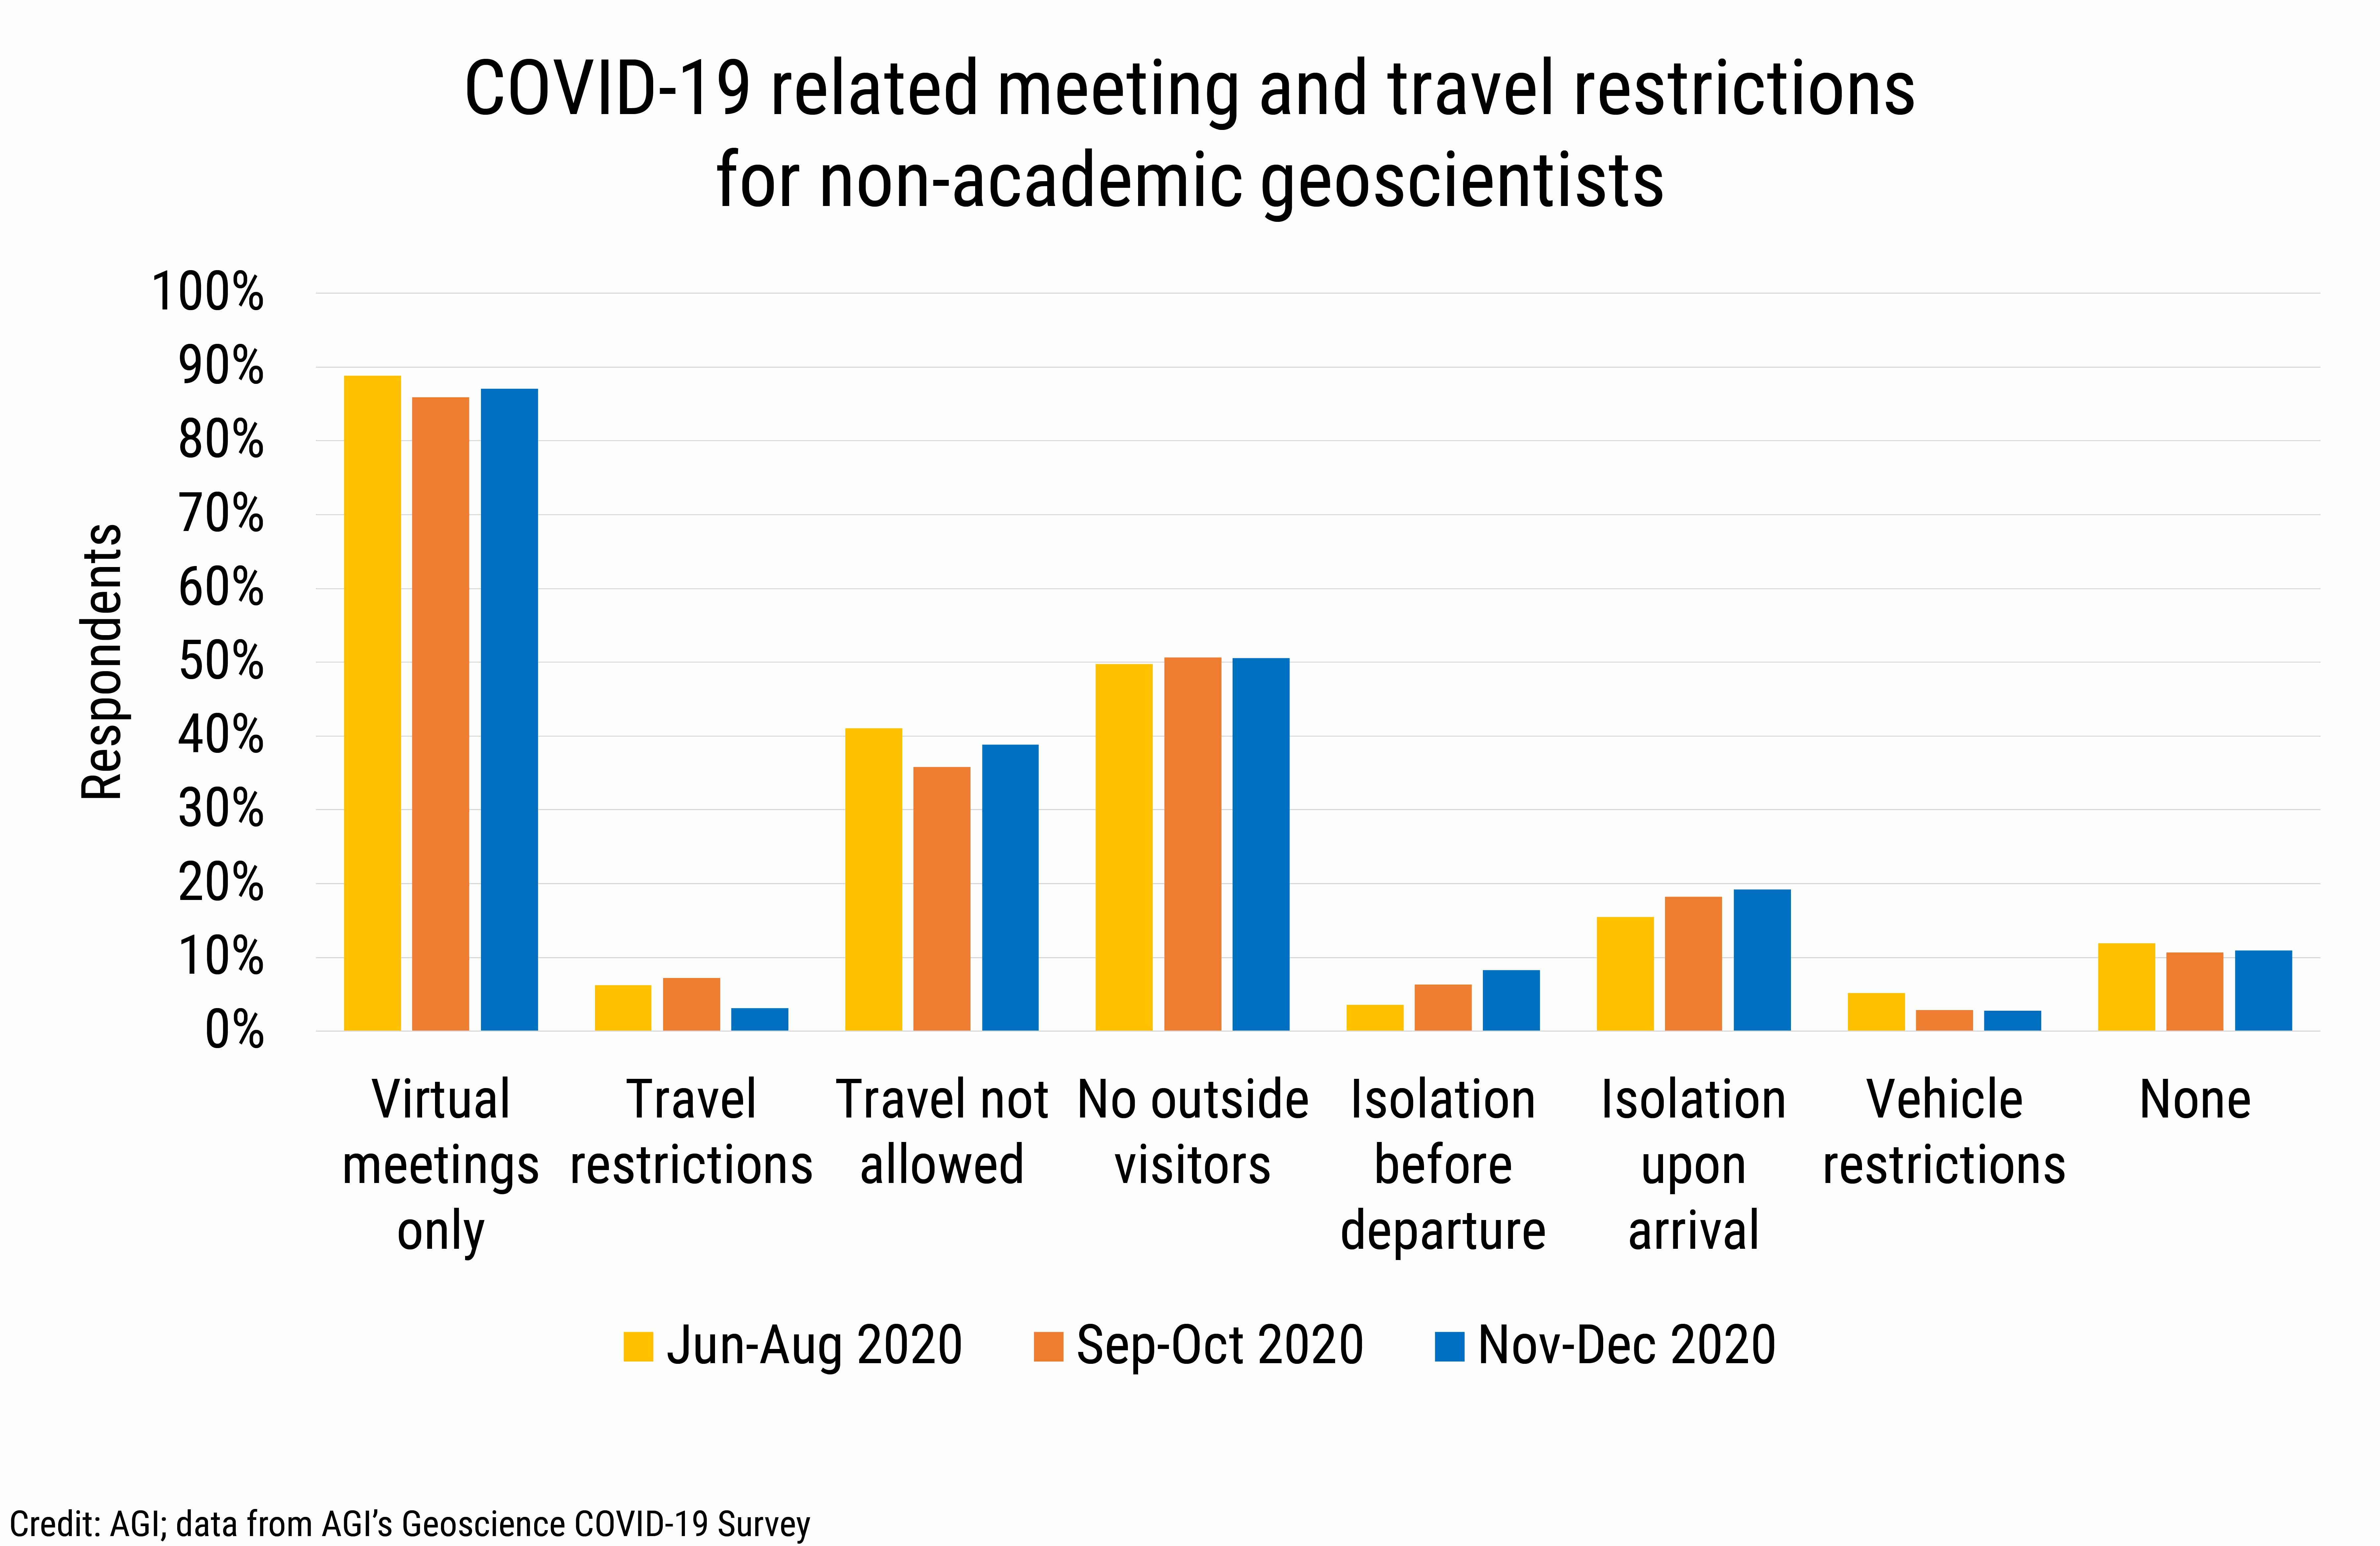 DB_2021-002 chart 13: COVID-19 related meeting and travel restrictions for non-academic geoscientists (Credit: AGI; data from AGI's Geoscience COVID-19 Survey)